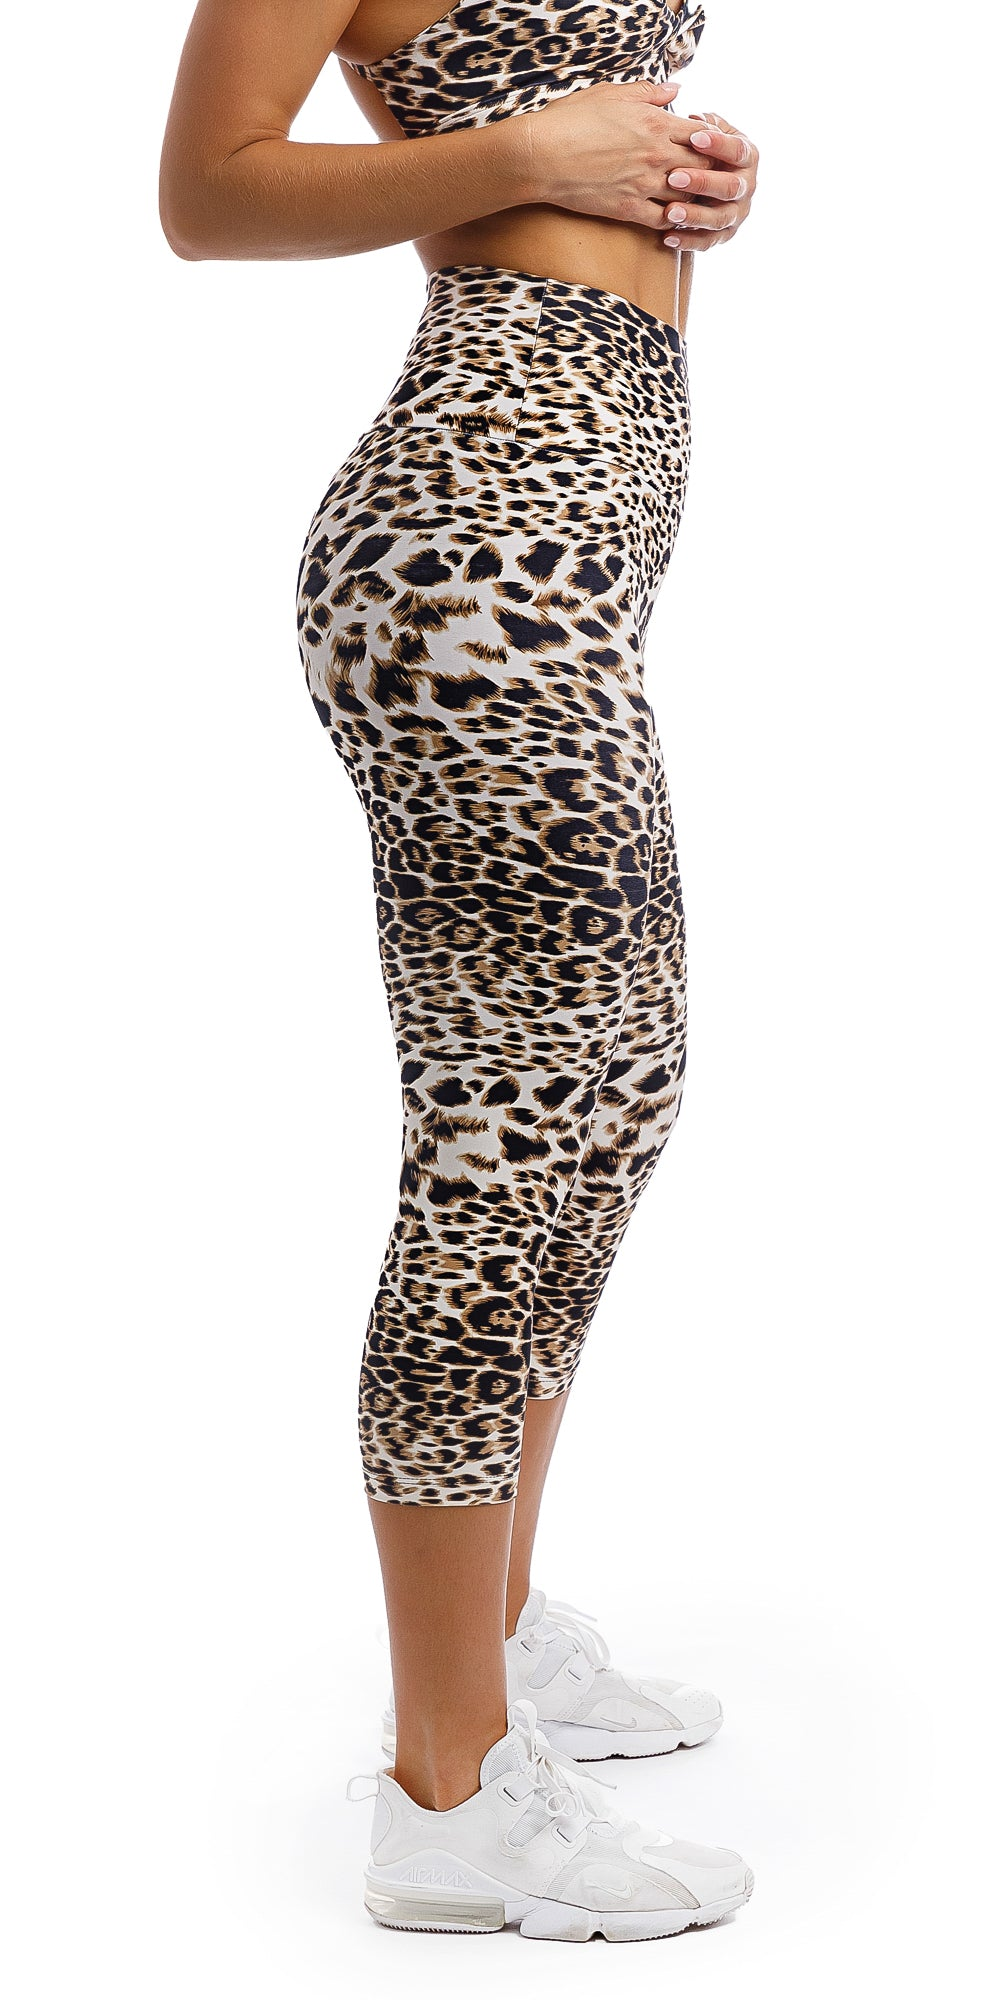 Side view of girl wearing brown & white cheetah print capri leggings & matching infinity bra